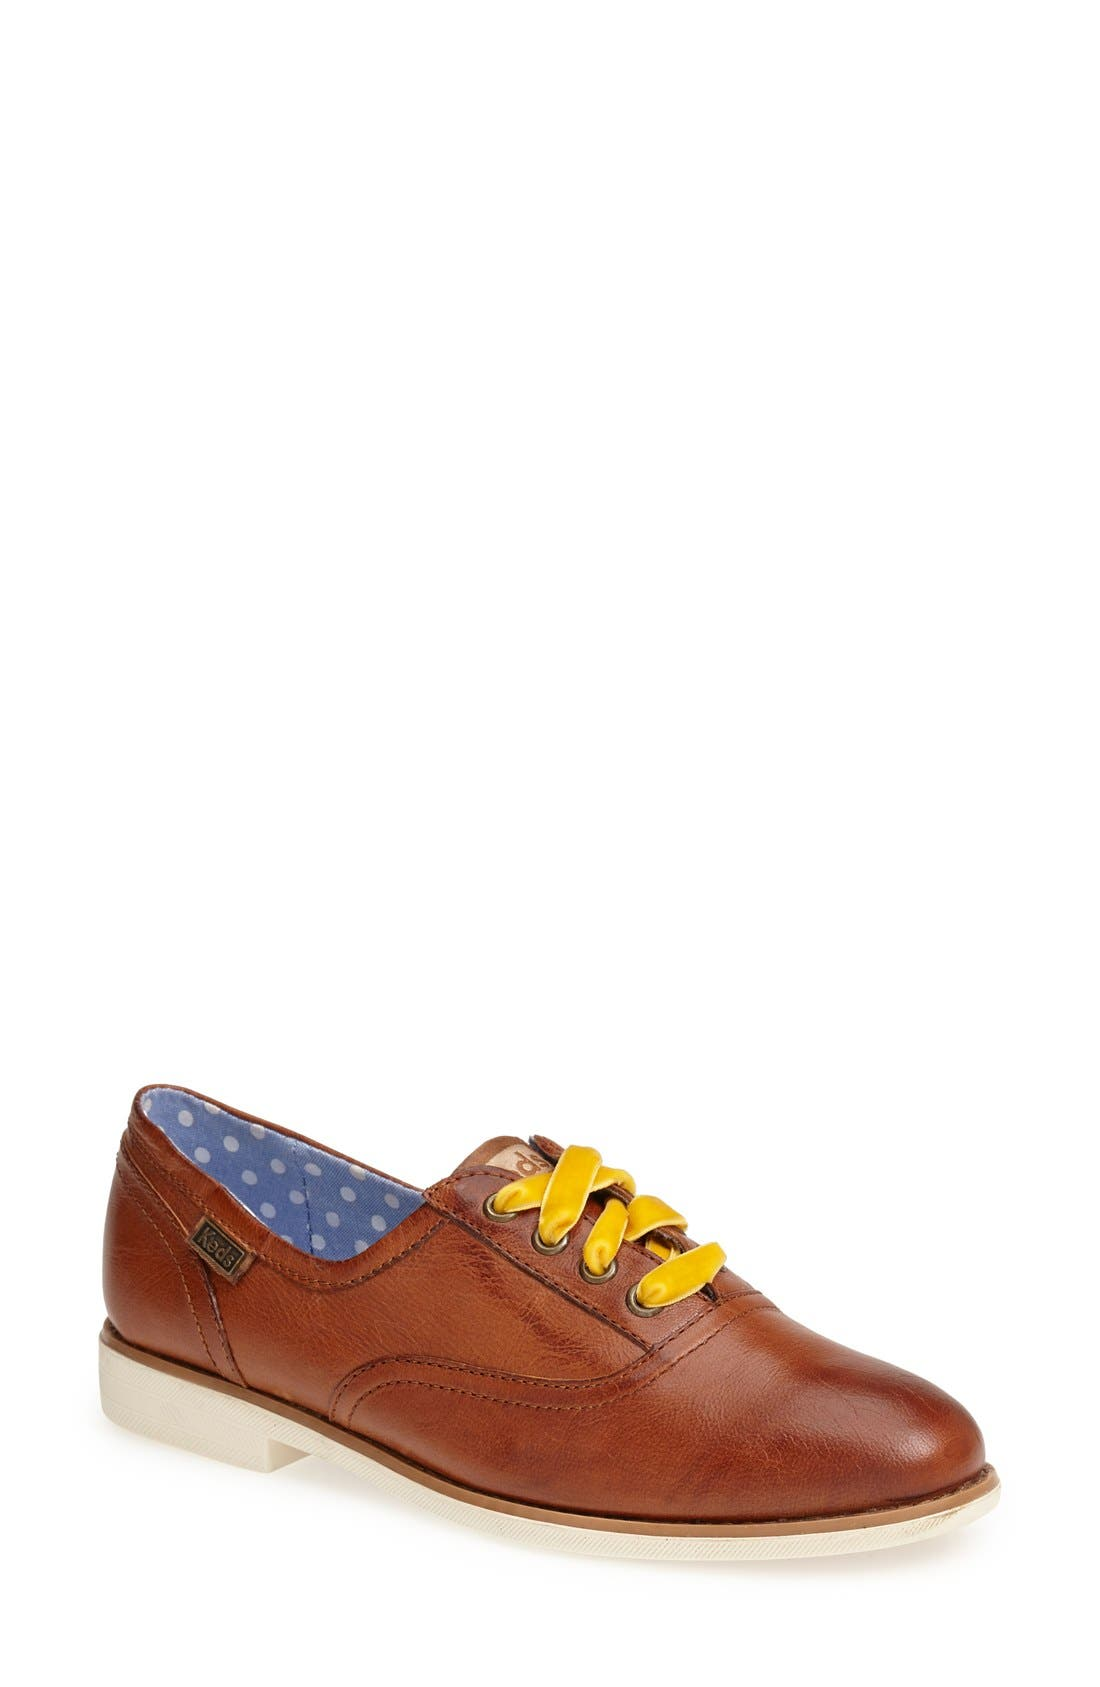 Alternate Image 1 Selected - Keds® 'Boyfriend' Leather Oxford (Women)